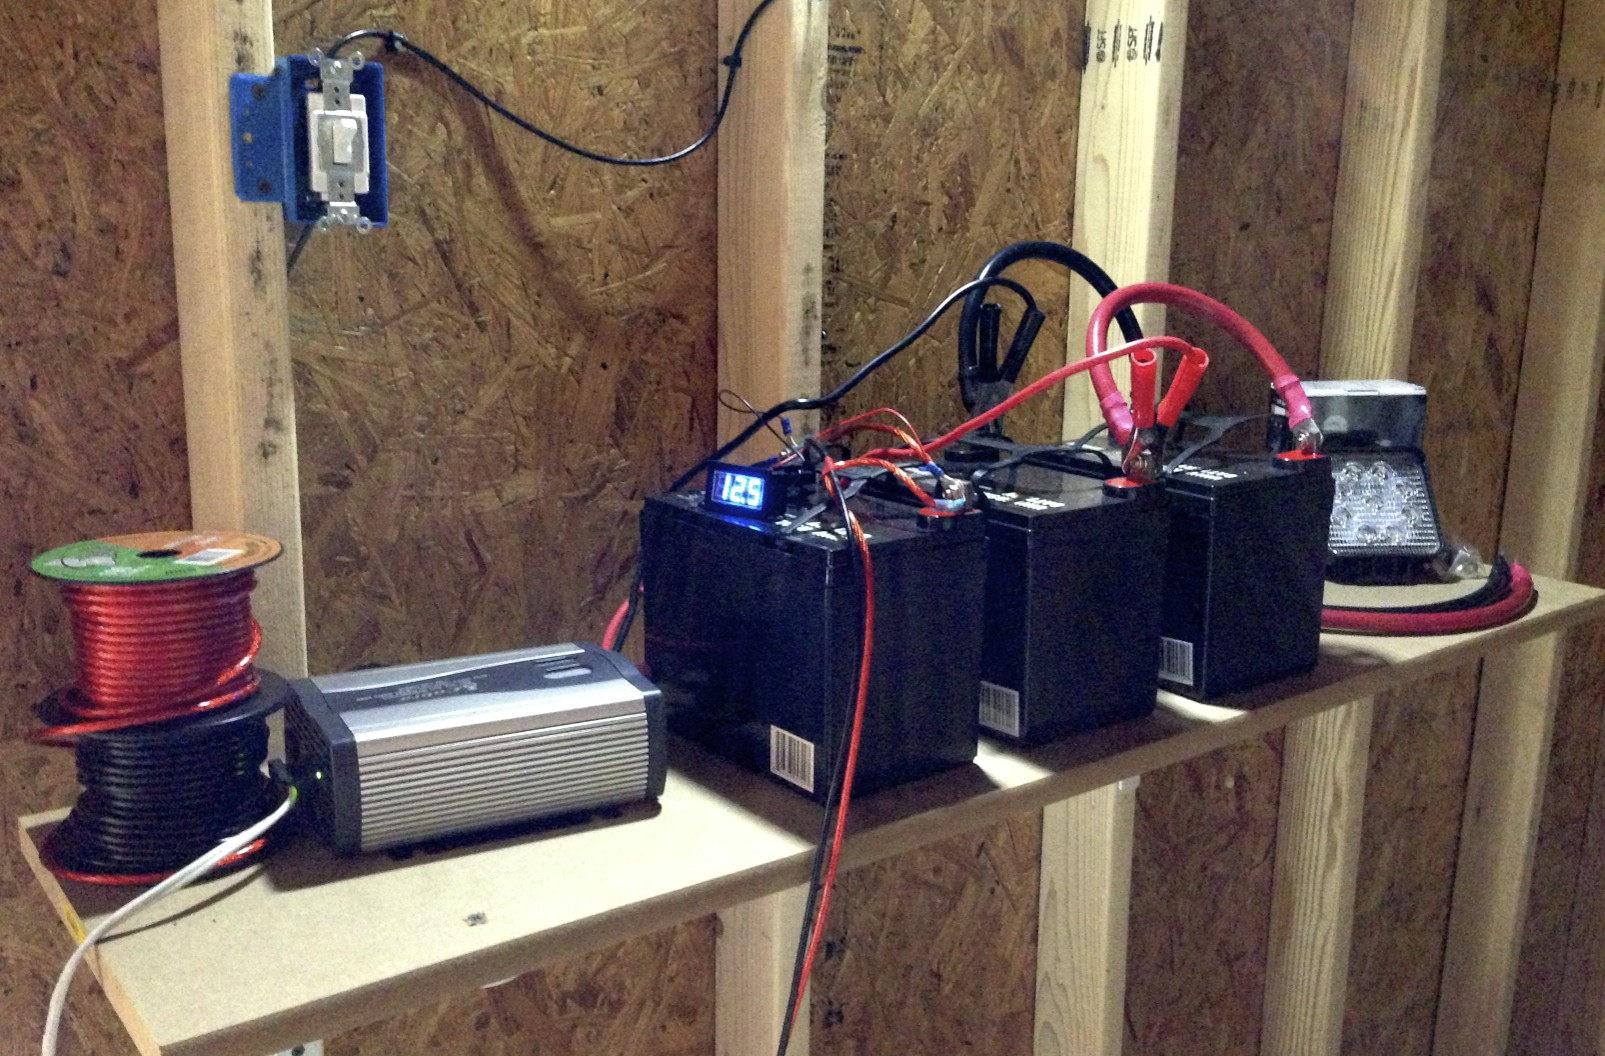 The batteries hooked up to each other, a power inverter (grey box on the left) and a some worklights.